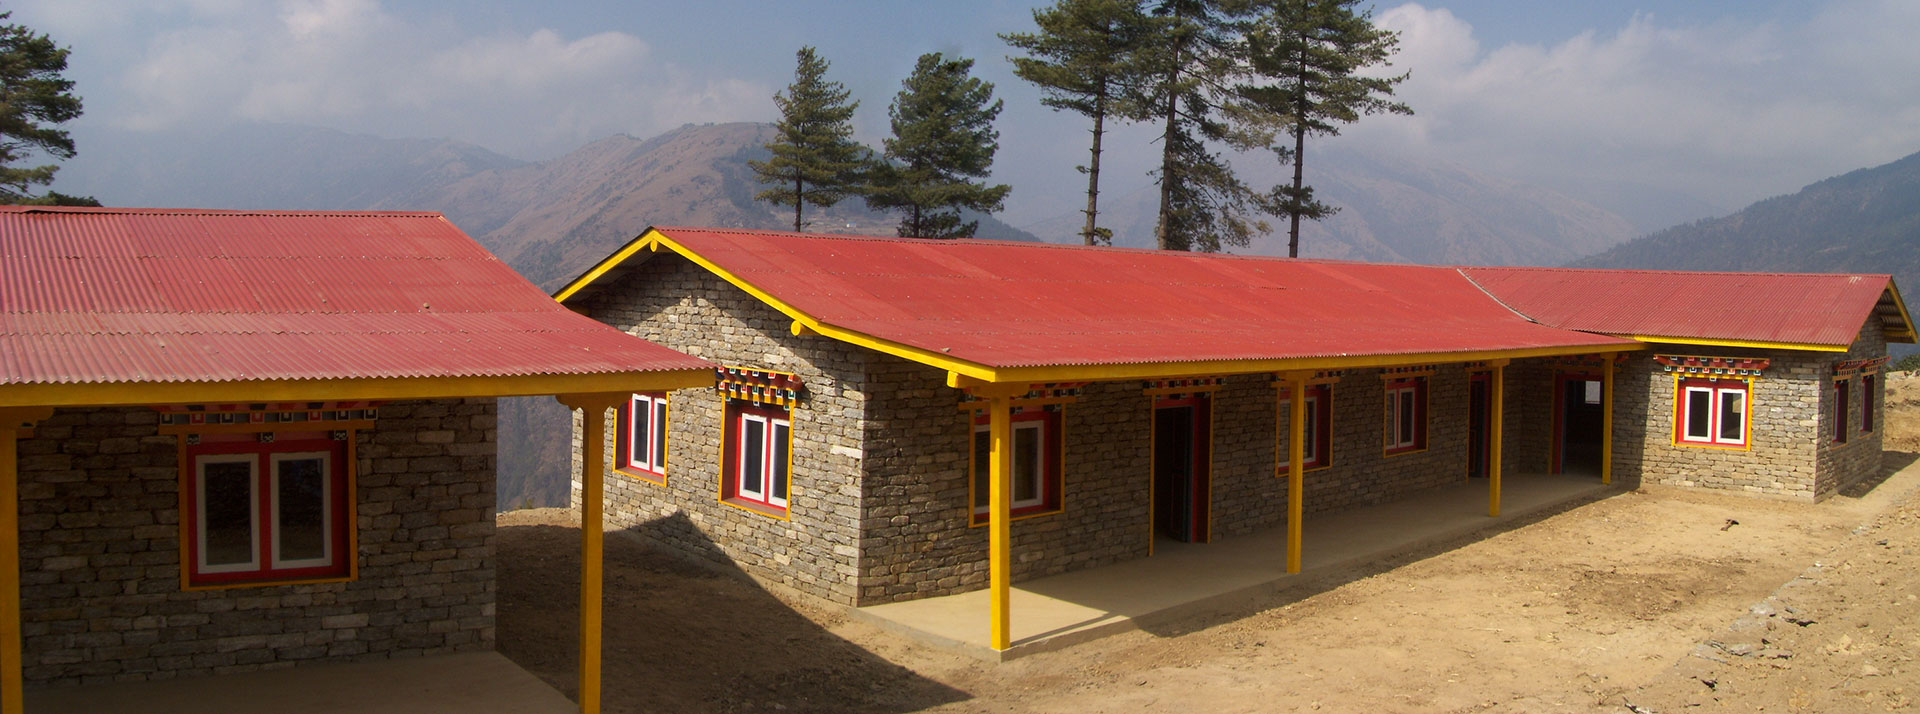 Solukhumbu Technical Education and Vocational Training Center